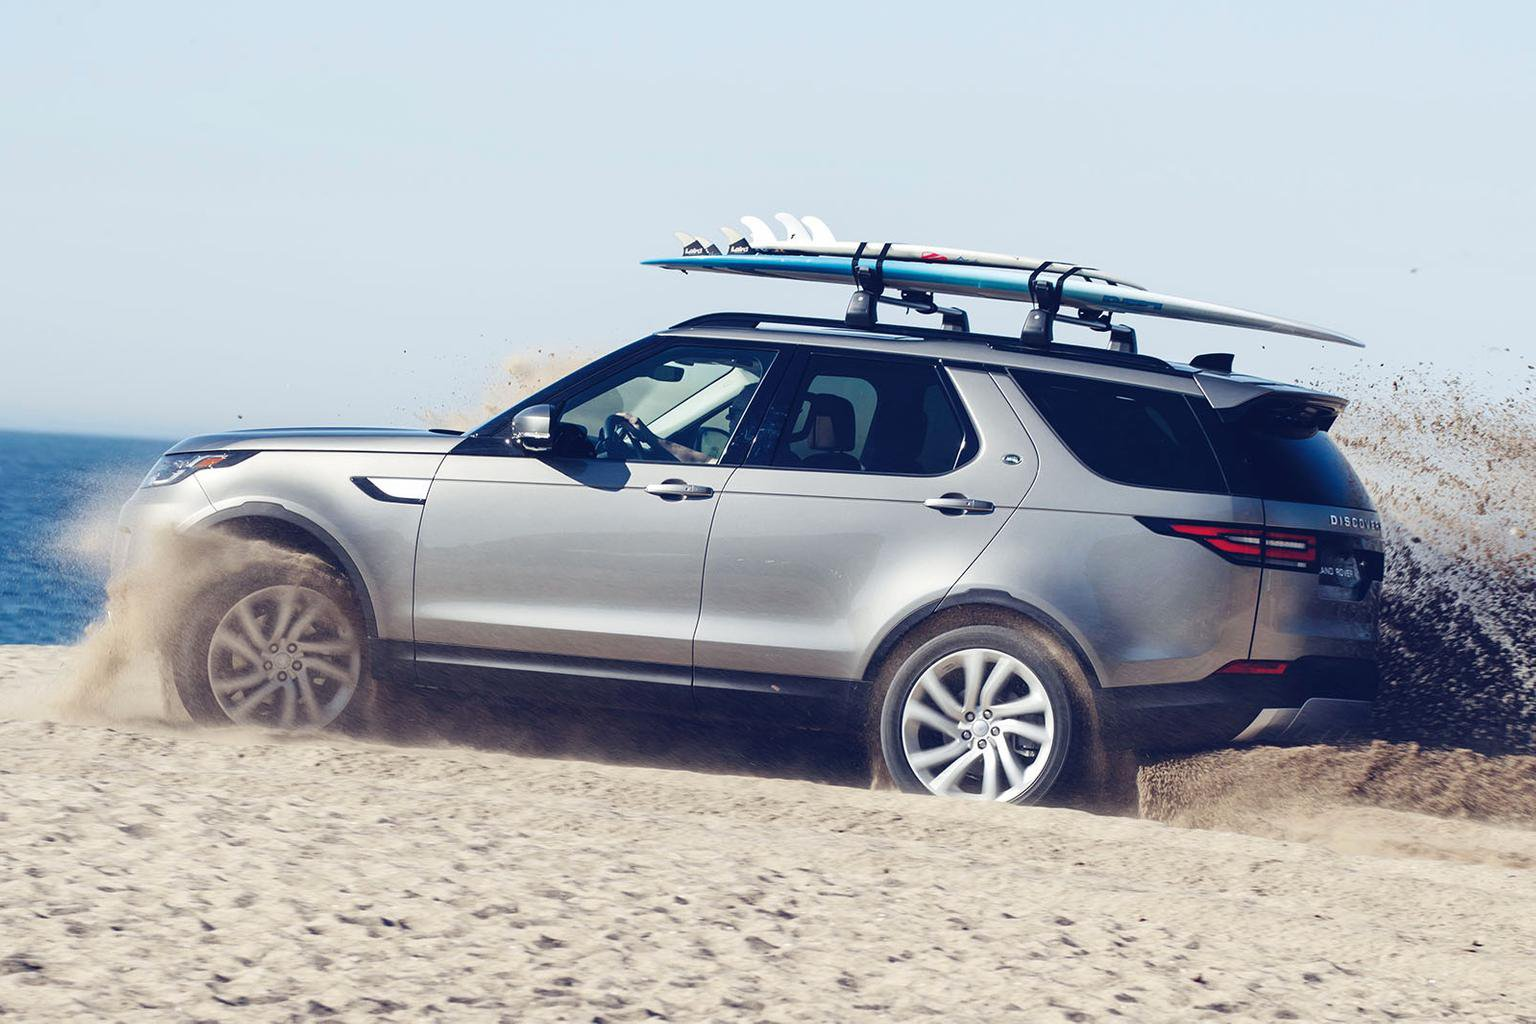 2017 Land Rover Discovery - exclusive family preview event